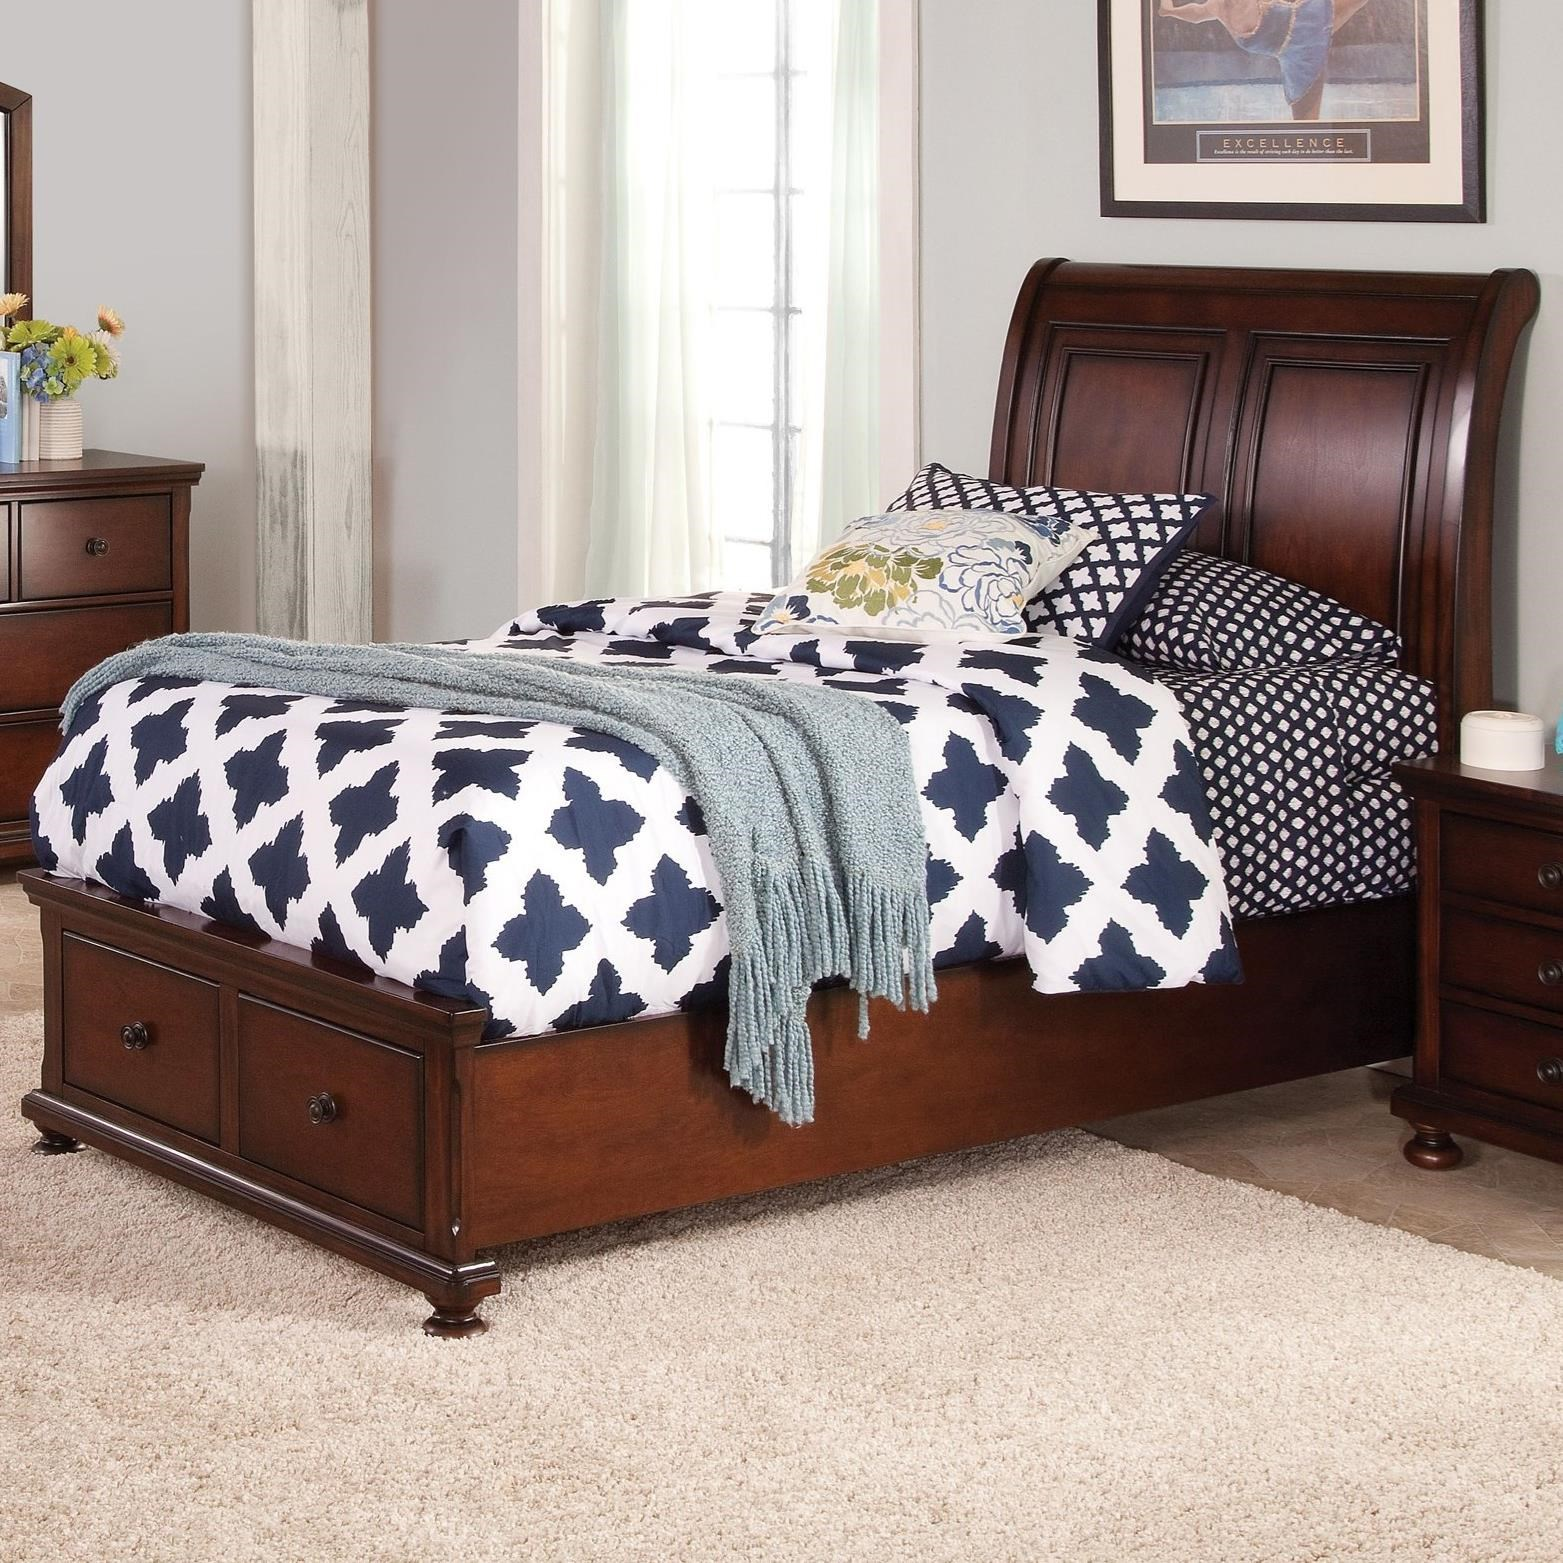 Full Low Profile Storage Bed